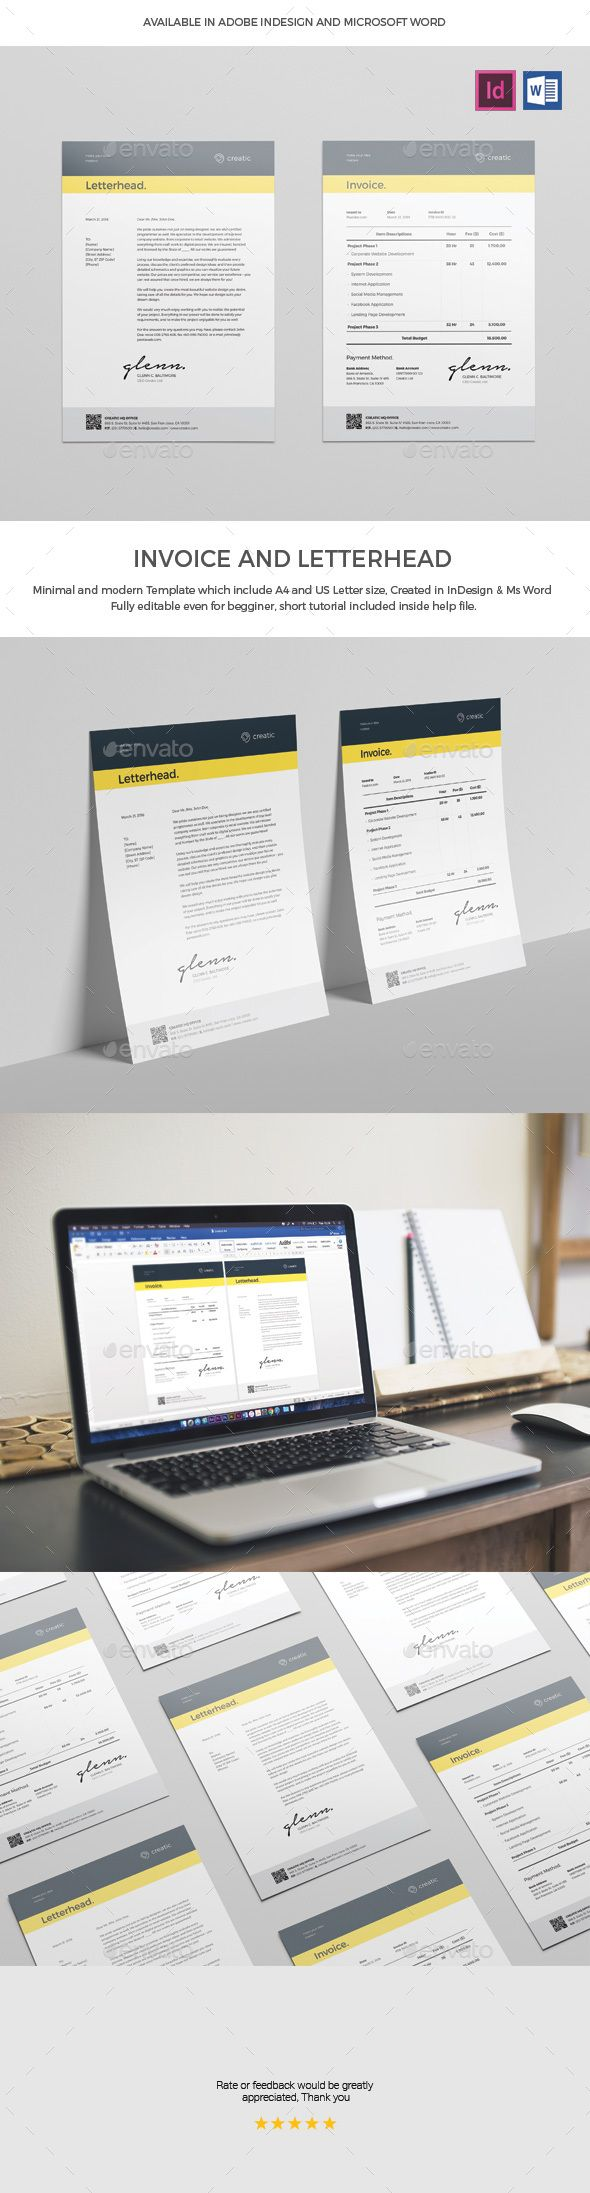 Invoice by broluthfi Invoice is a Sharp and Professional Template created in Adobe InDesign and Microsoft Word, it comes in two paper sizes including U